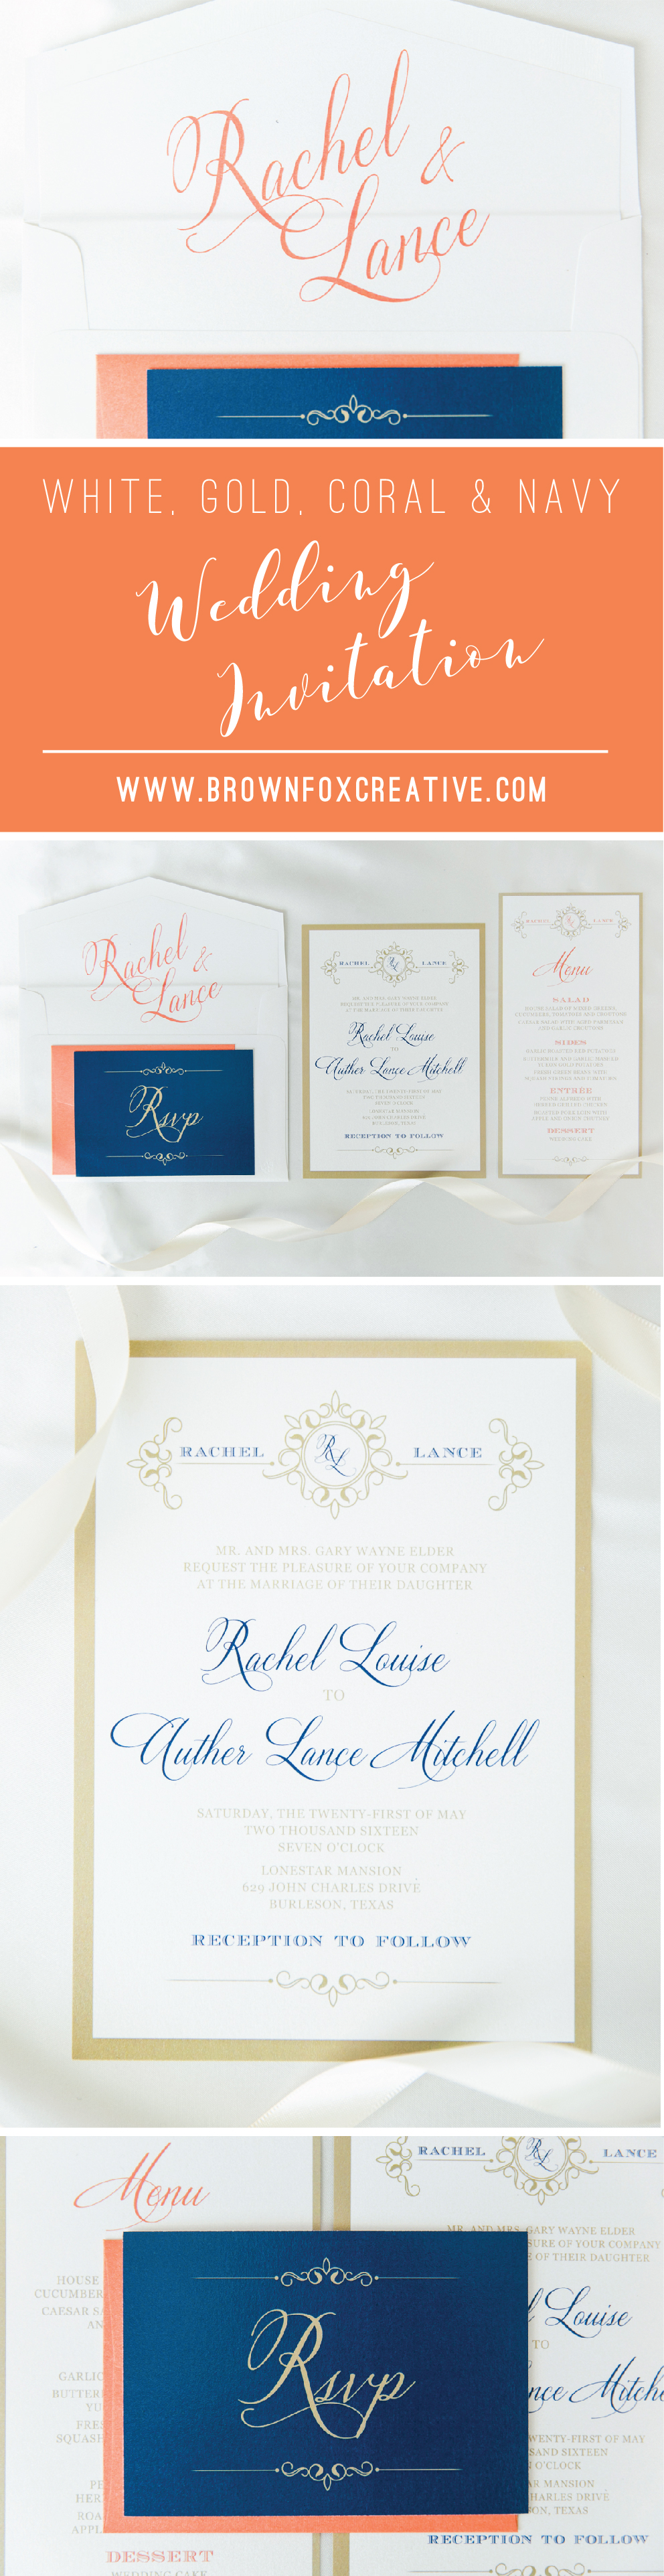 Gold color cardstock paper 5x7 - 5x7 Gold White Coral Navy Wedding Invitation Suite With Details Insert Rsvp And Envelope Liner Different Colors Available